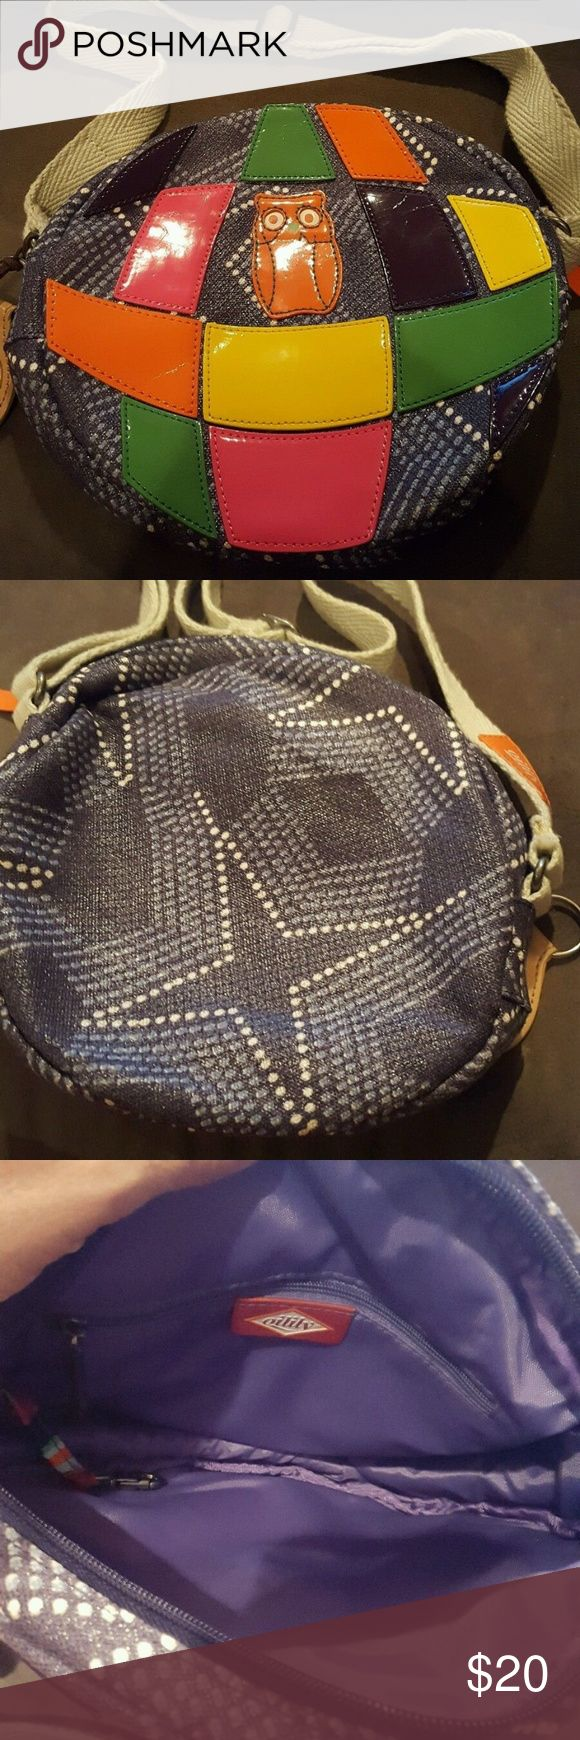 """Oilily handbag shoulder bag purse owl Bag is in excellent condition. Bag zips on top and opens to one compartment. There is a zip pocket against the back. Bag is located in a smoke-free home.   Bag Length:  9"""" Strap Drop:  13""""  Height:  8.5"""" Oilily Bags Shoulder Bags"""